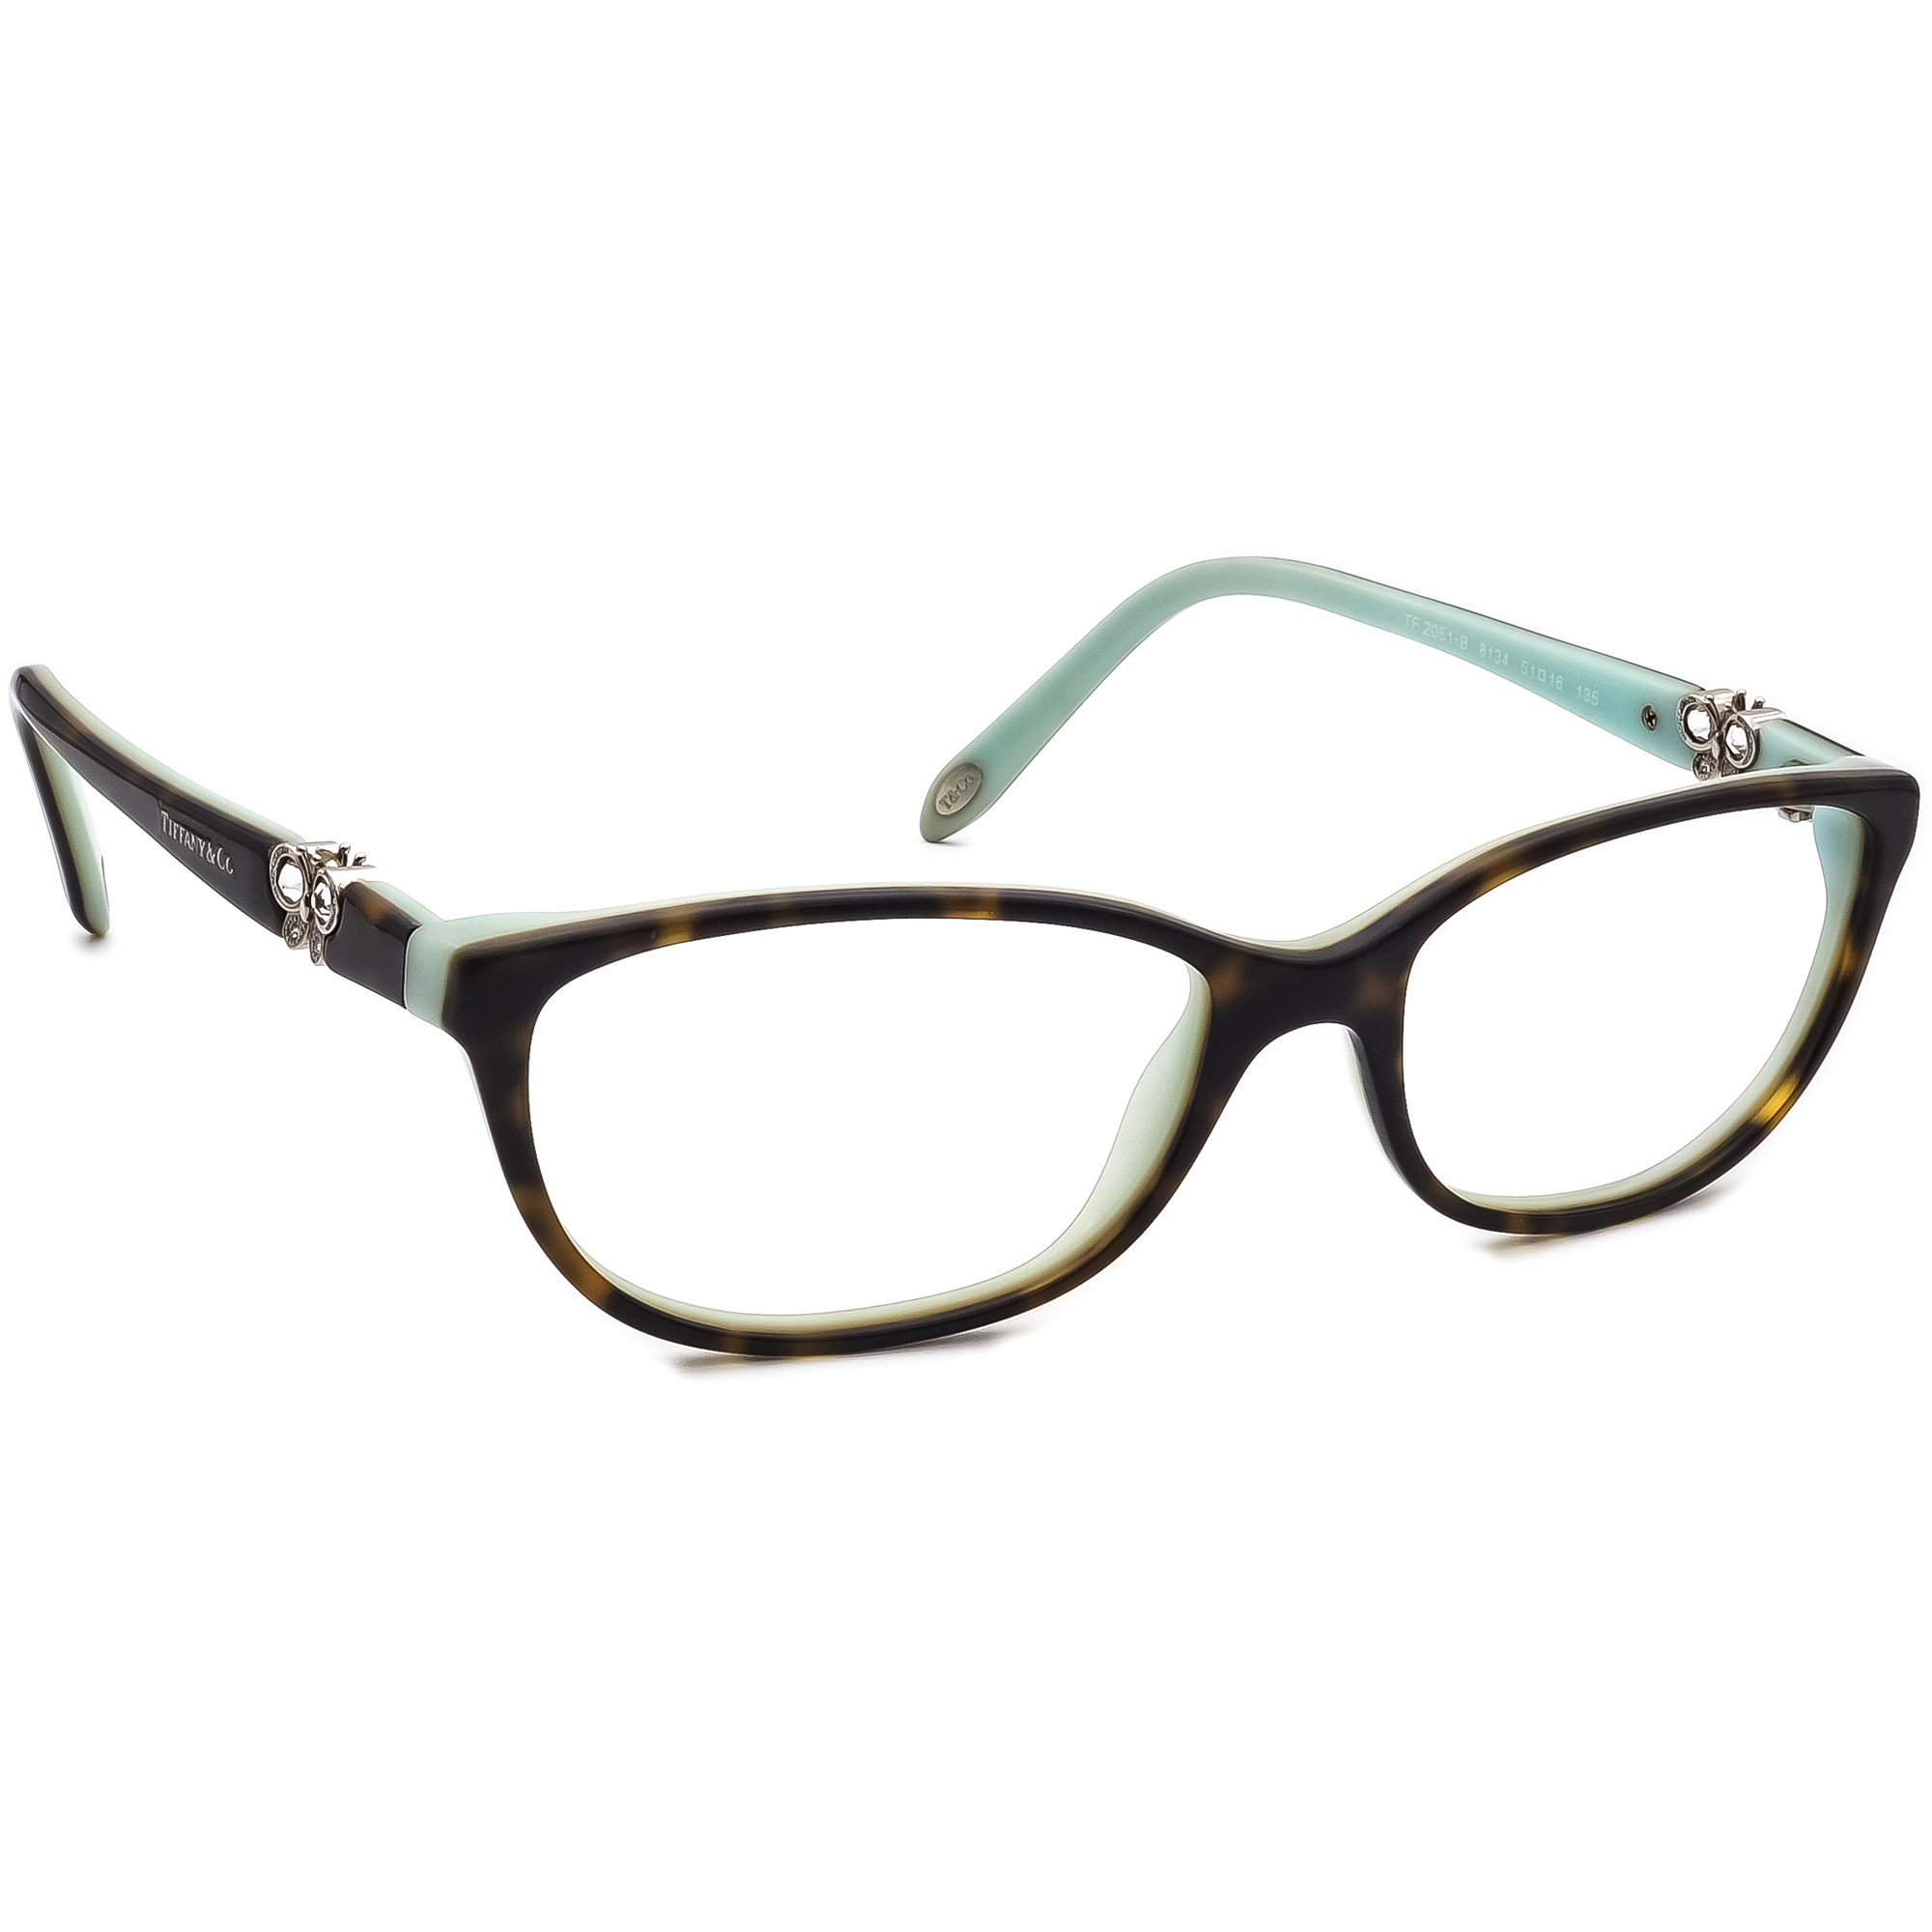 Tiffany & Co. TF 2051-B 8134 Eyeglasses